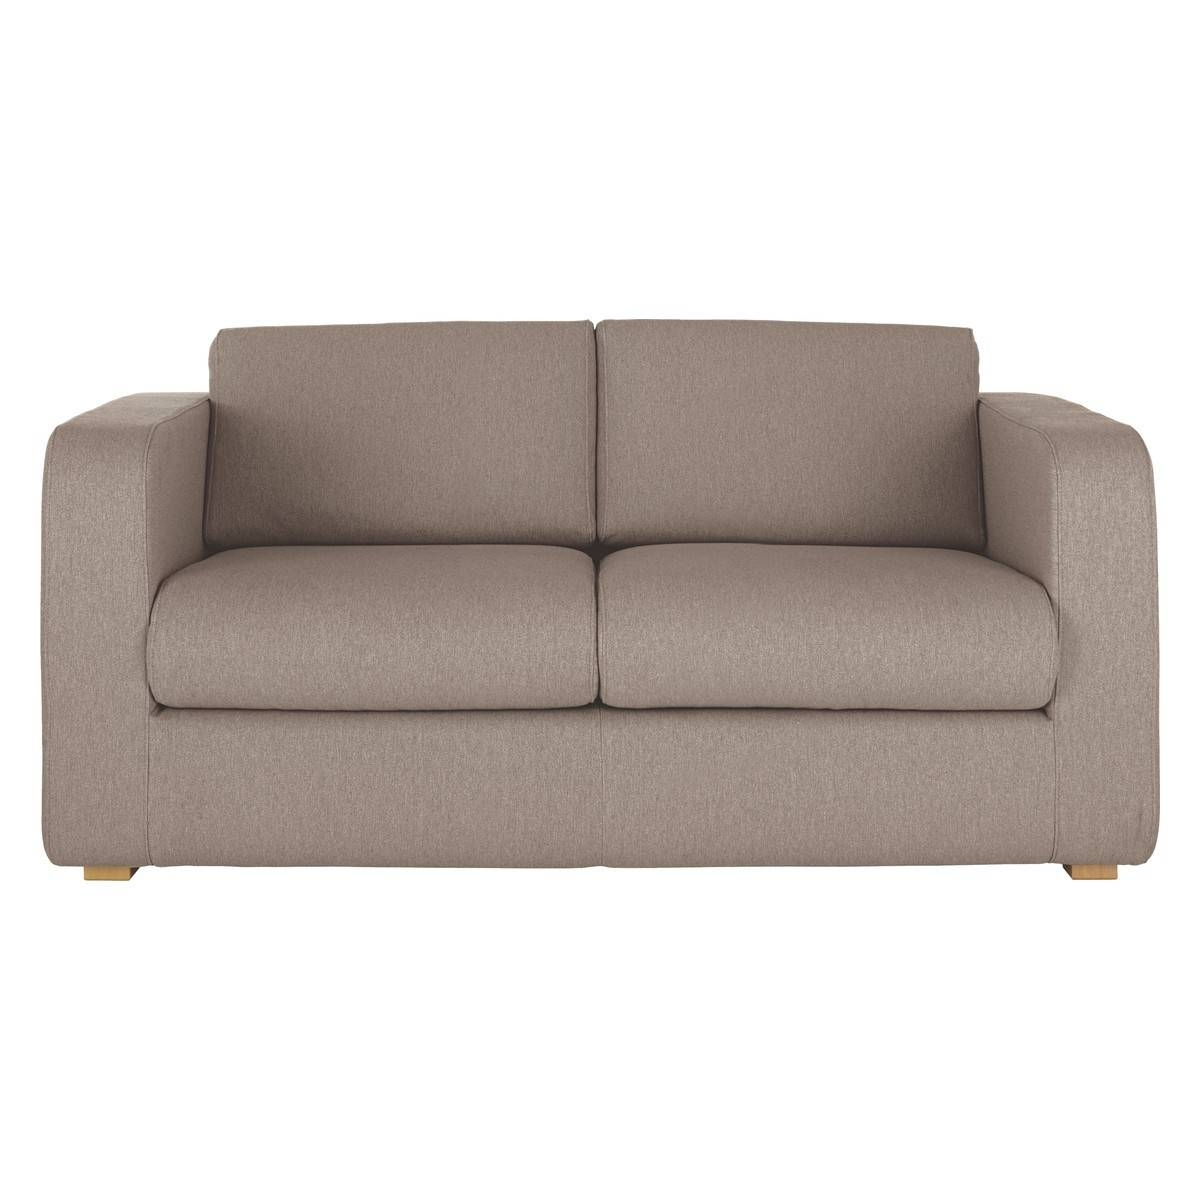 Porto Natural Fabric 2 Seater Sofa Bed | Buy Now At Habitat Uk throughout 2 Seater Sofas (Image 21 of 30)